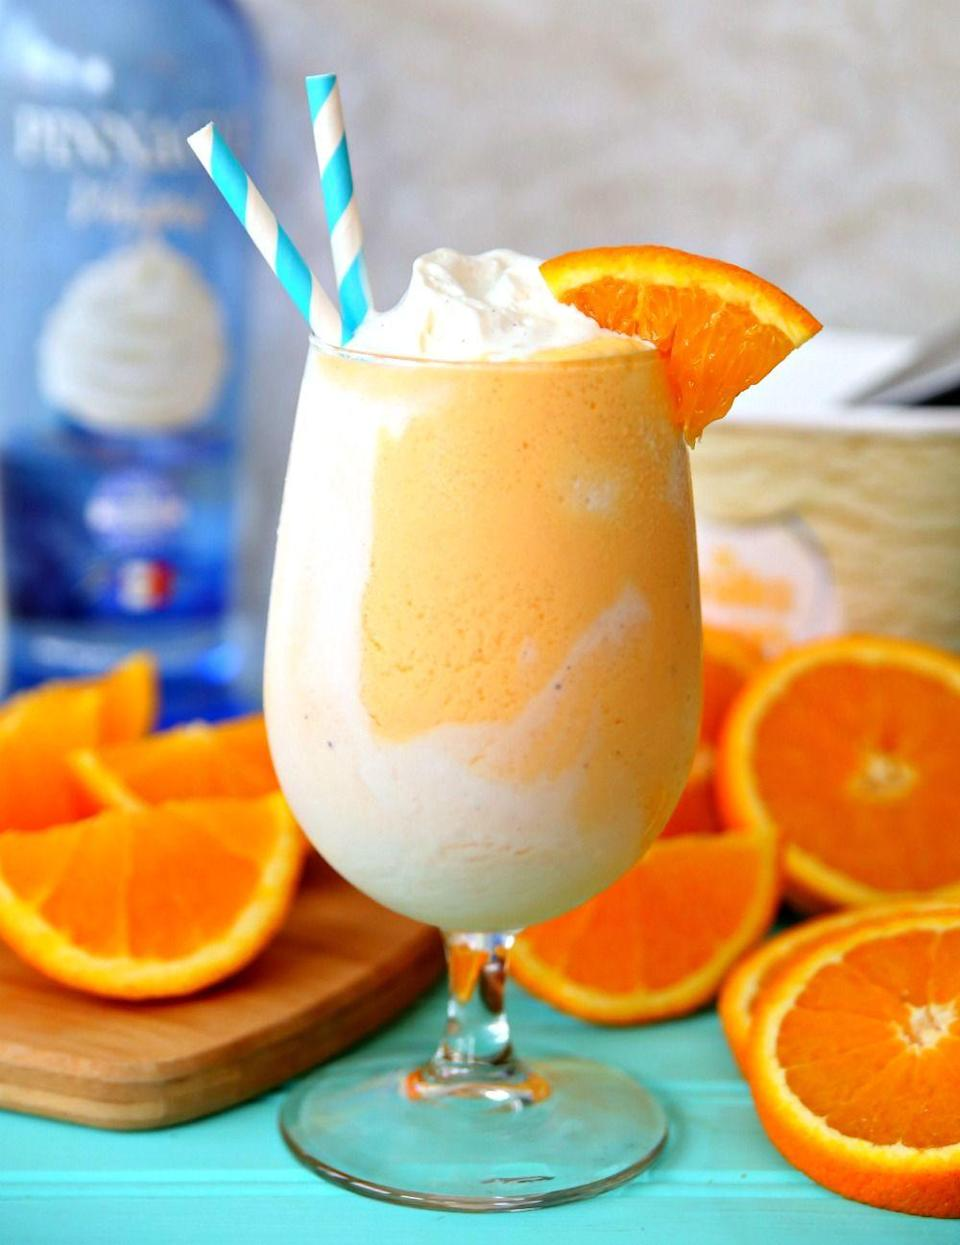 """<p>Wind down for the day with a creamy orange cocktail that doubles as a perfectly suitable replacement for dessert. </p><p>Get the recipe at <a href=""""https://www.happygoluckyblog.com/boozy-orange-creamsicle-float/"""" rel=""""nofollow noopener"""" target=""""_blank"""" data-ylk=""""slk:Happy Go Lucky Blog"""" class=""""link rapid-noclick-resp"""">Happy Go Lucky Blog</a>.</p>"""